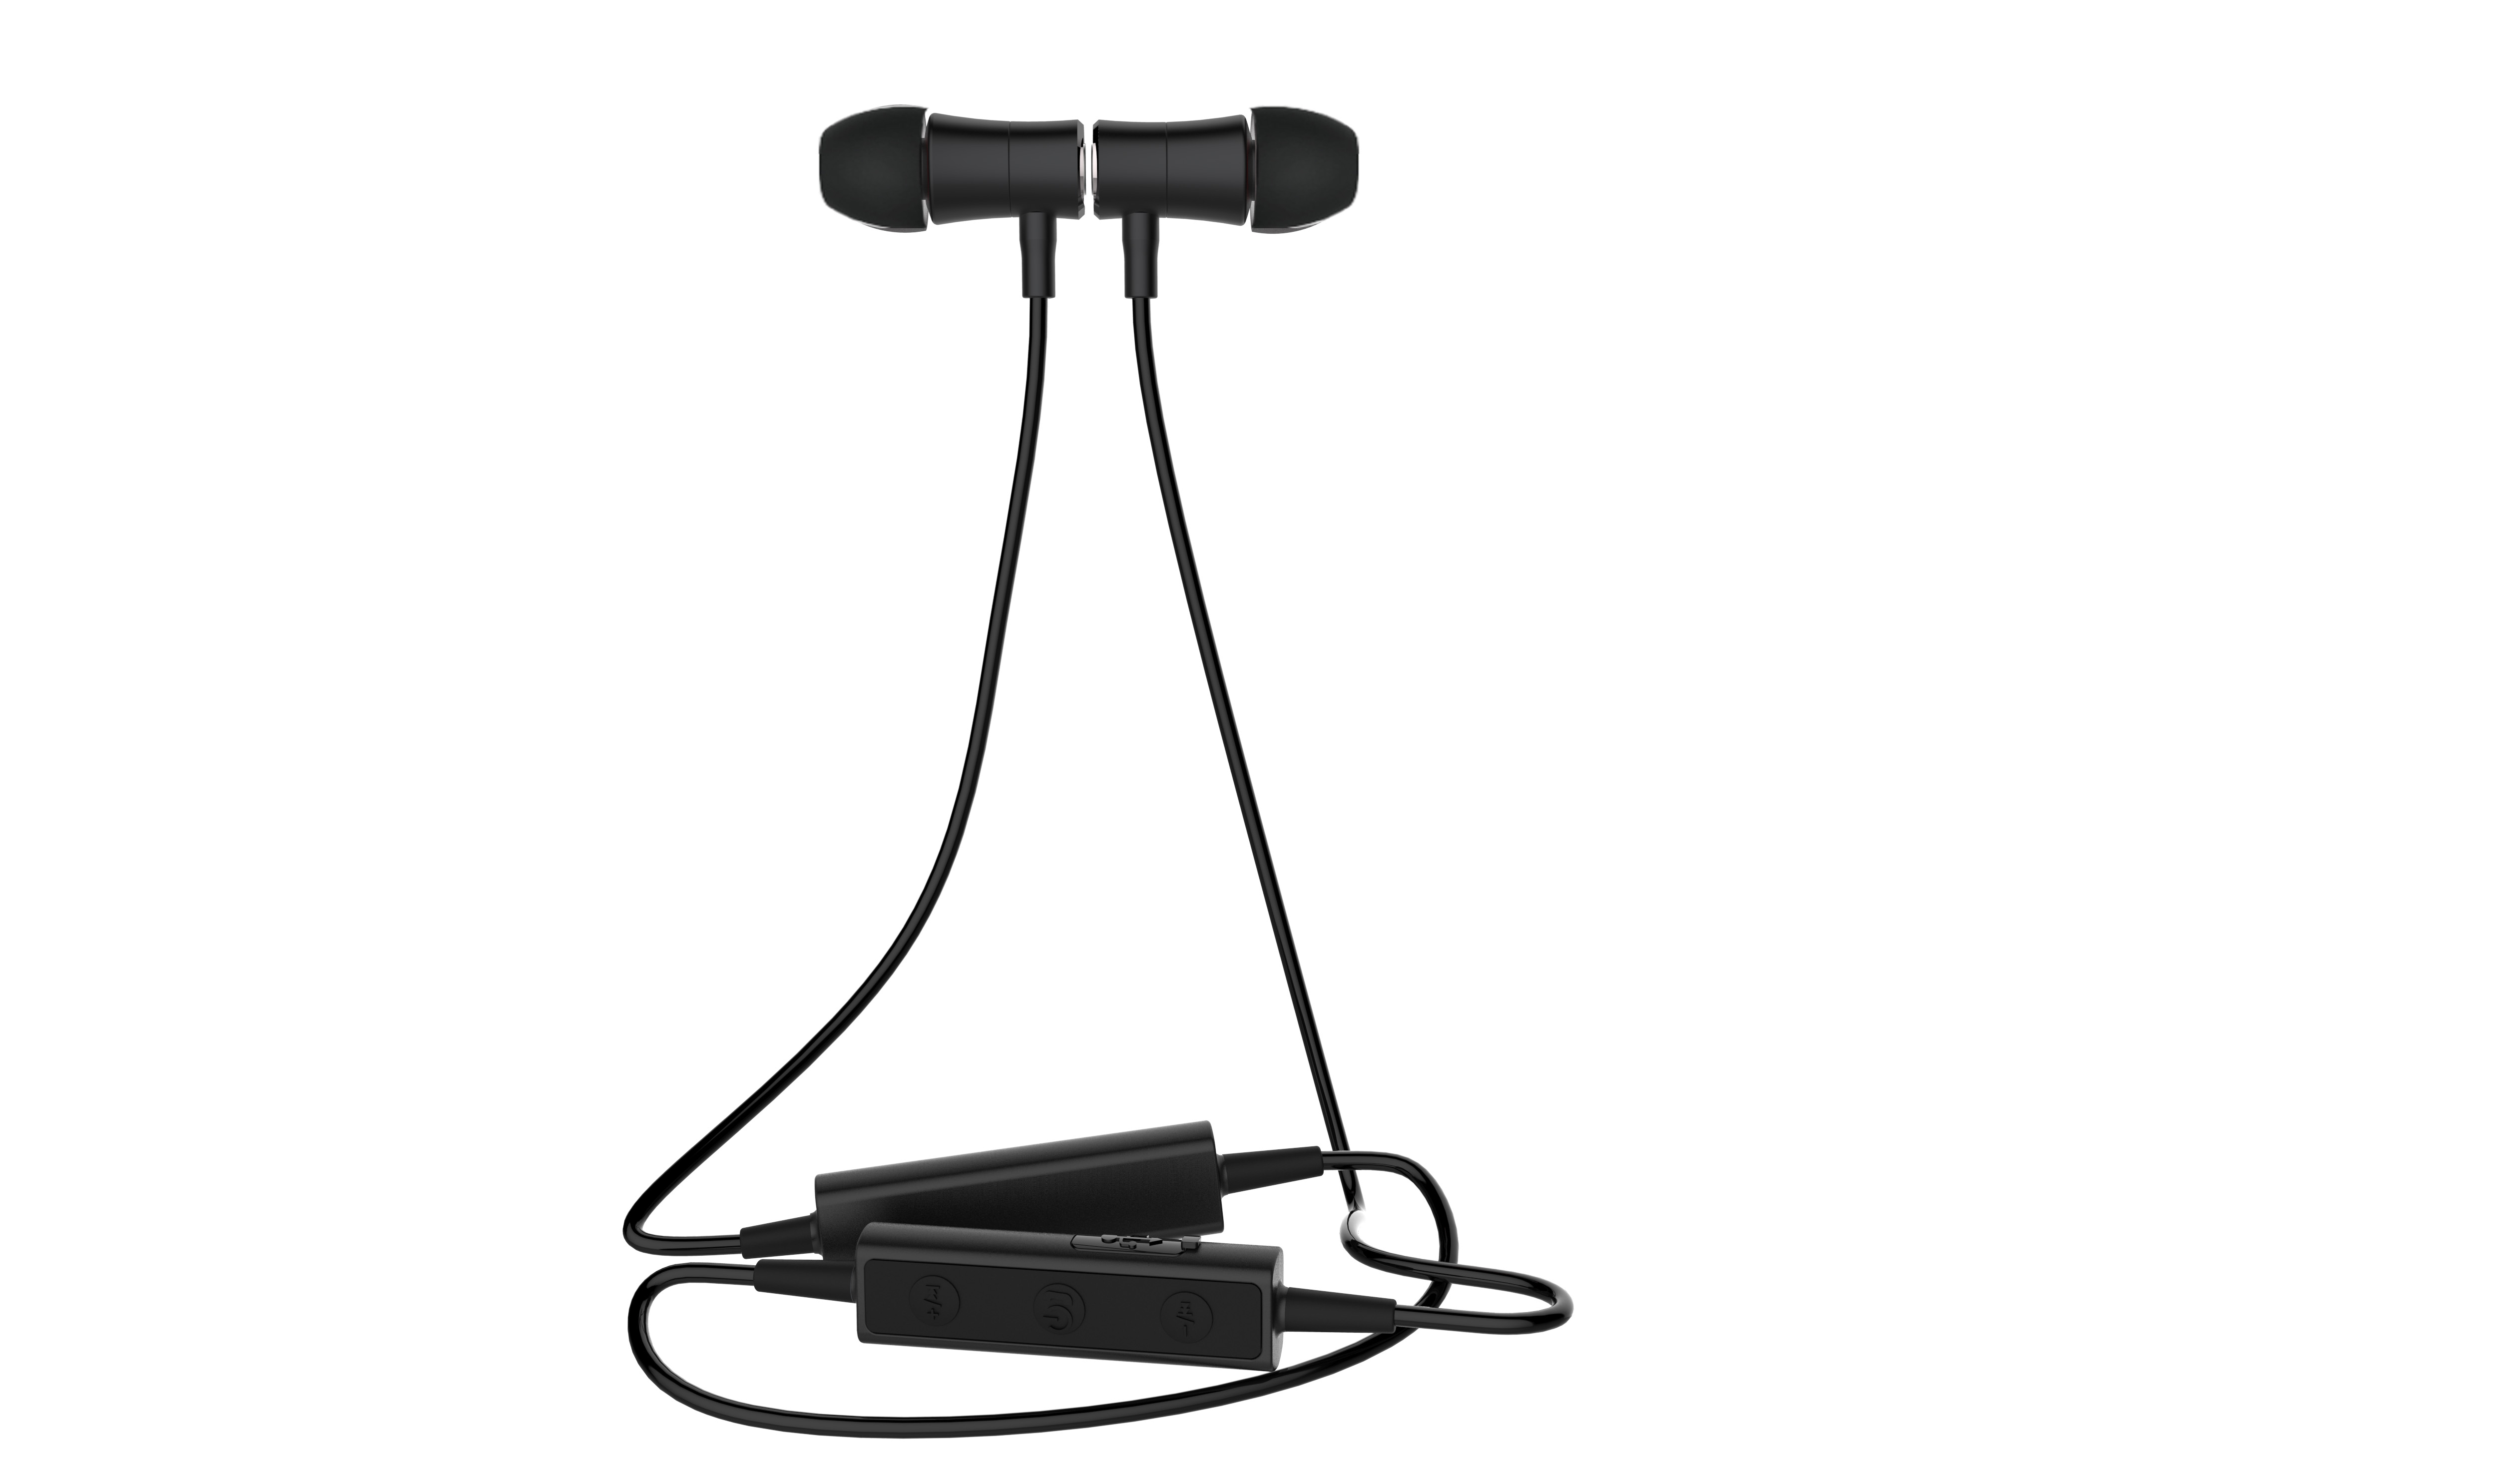 Blue tooth aluminium sports headset in black, in ear speaker noise cancellation with black EVA carry case